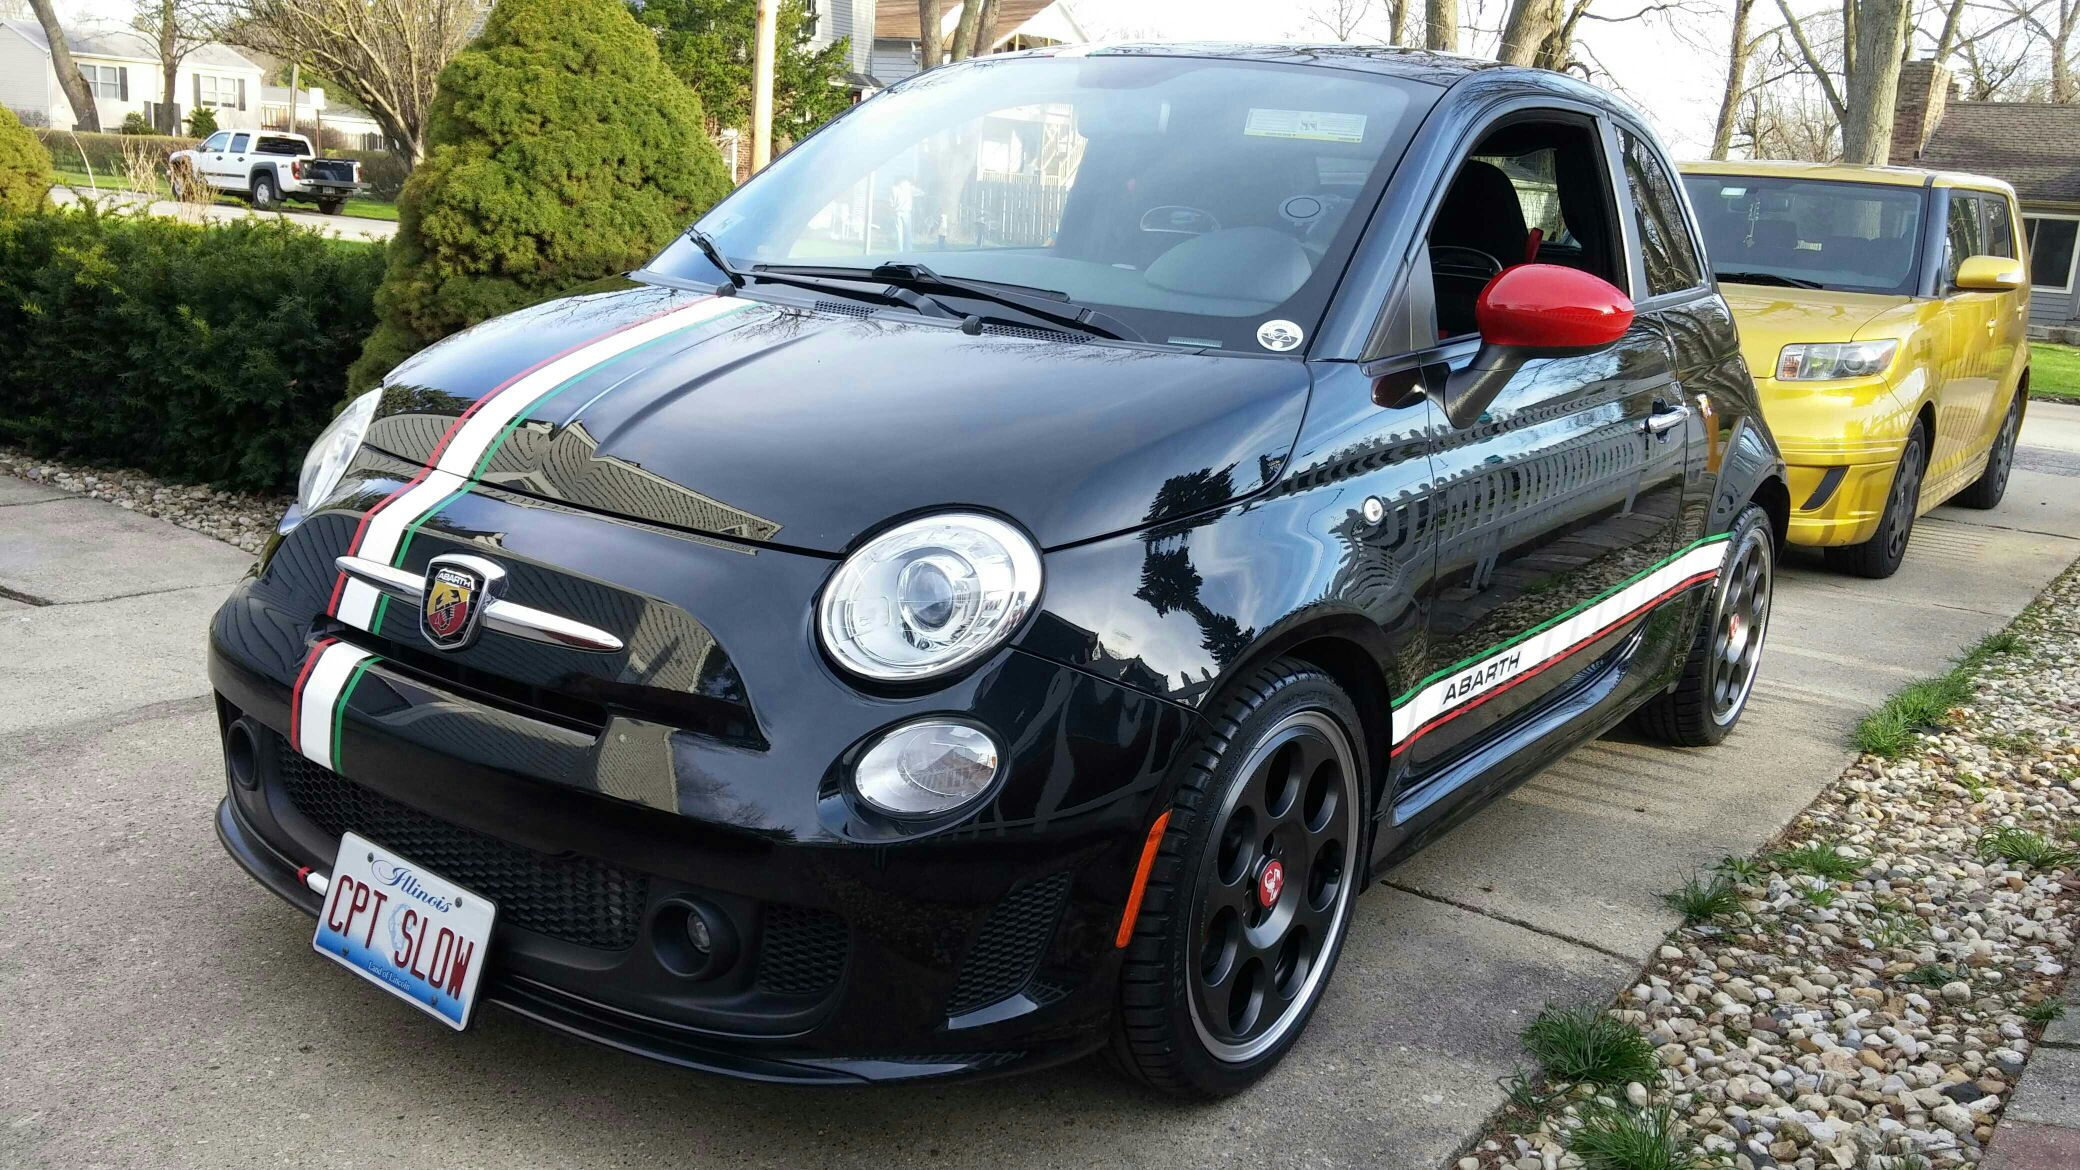 The Real Italian Job 2 Mods That Changed My Car Page 2